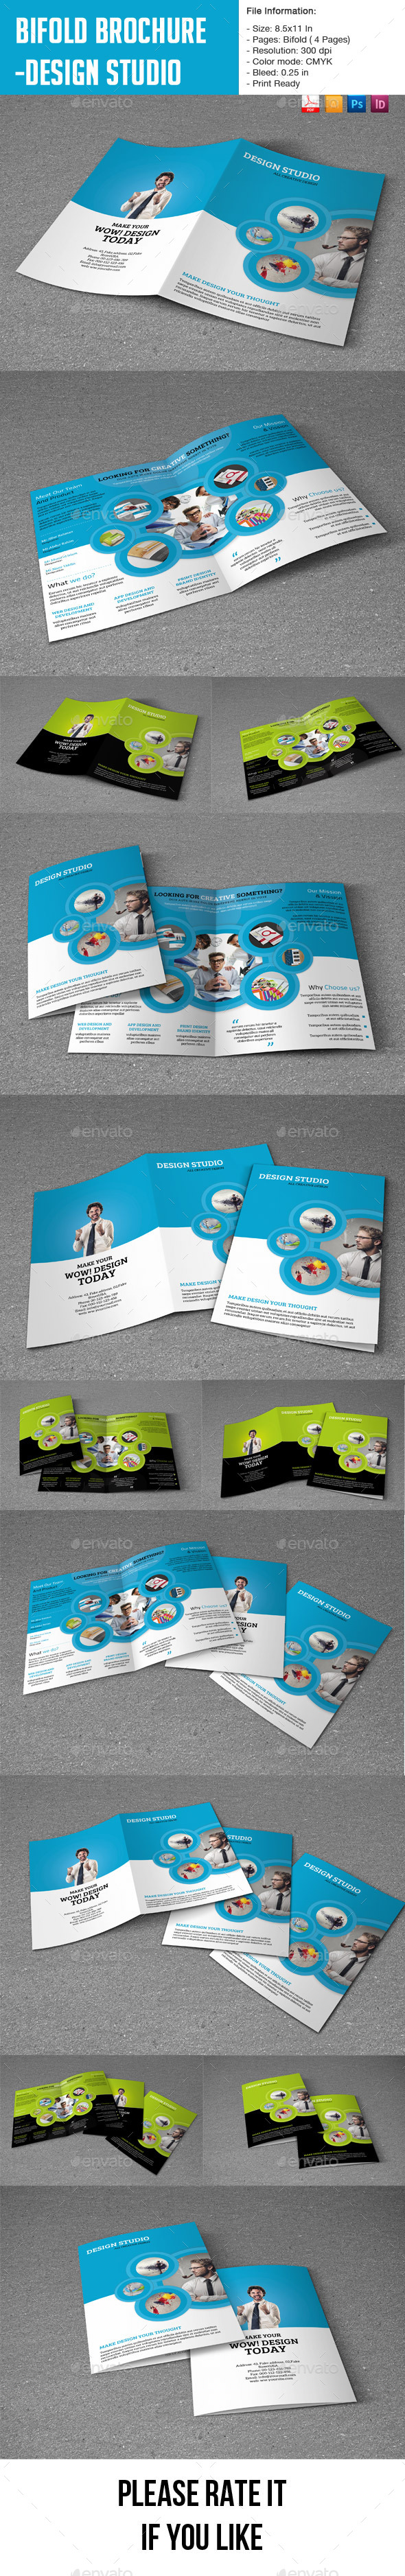 GraphicRiver Bifold Brochure for Design Studio- 4 Pages 8828152